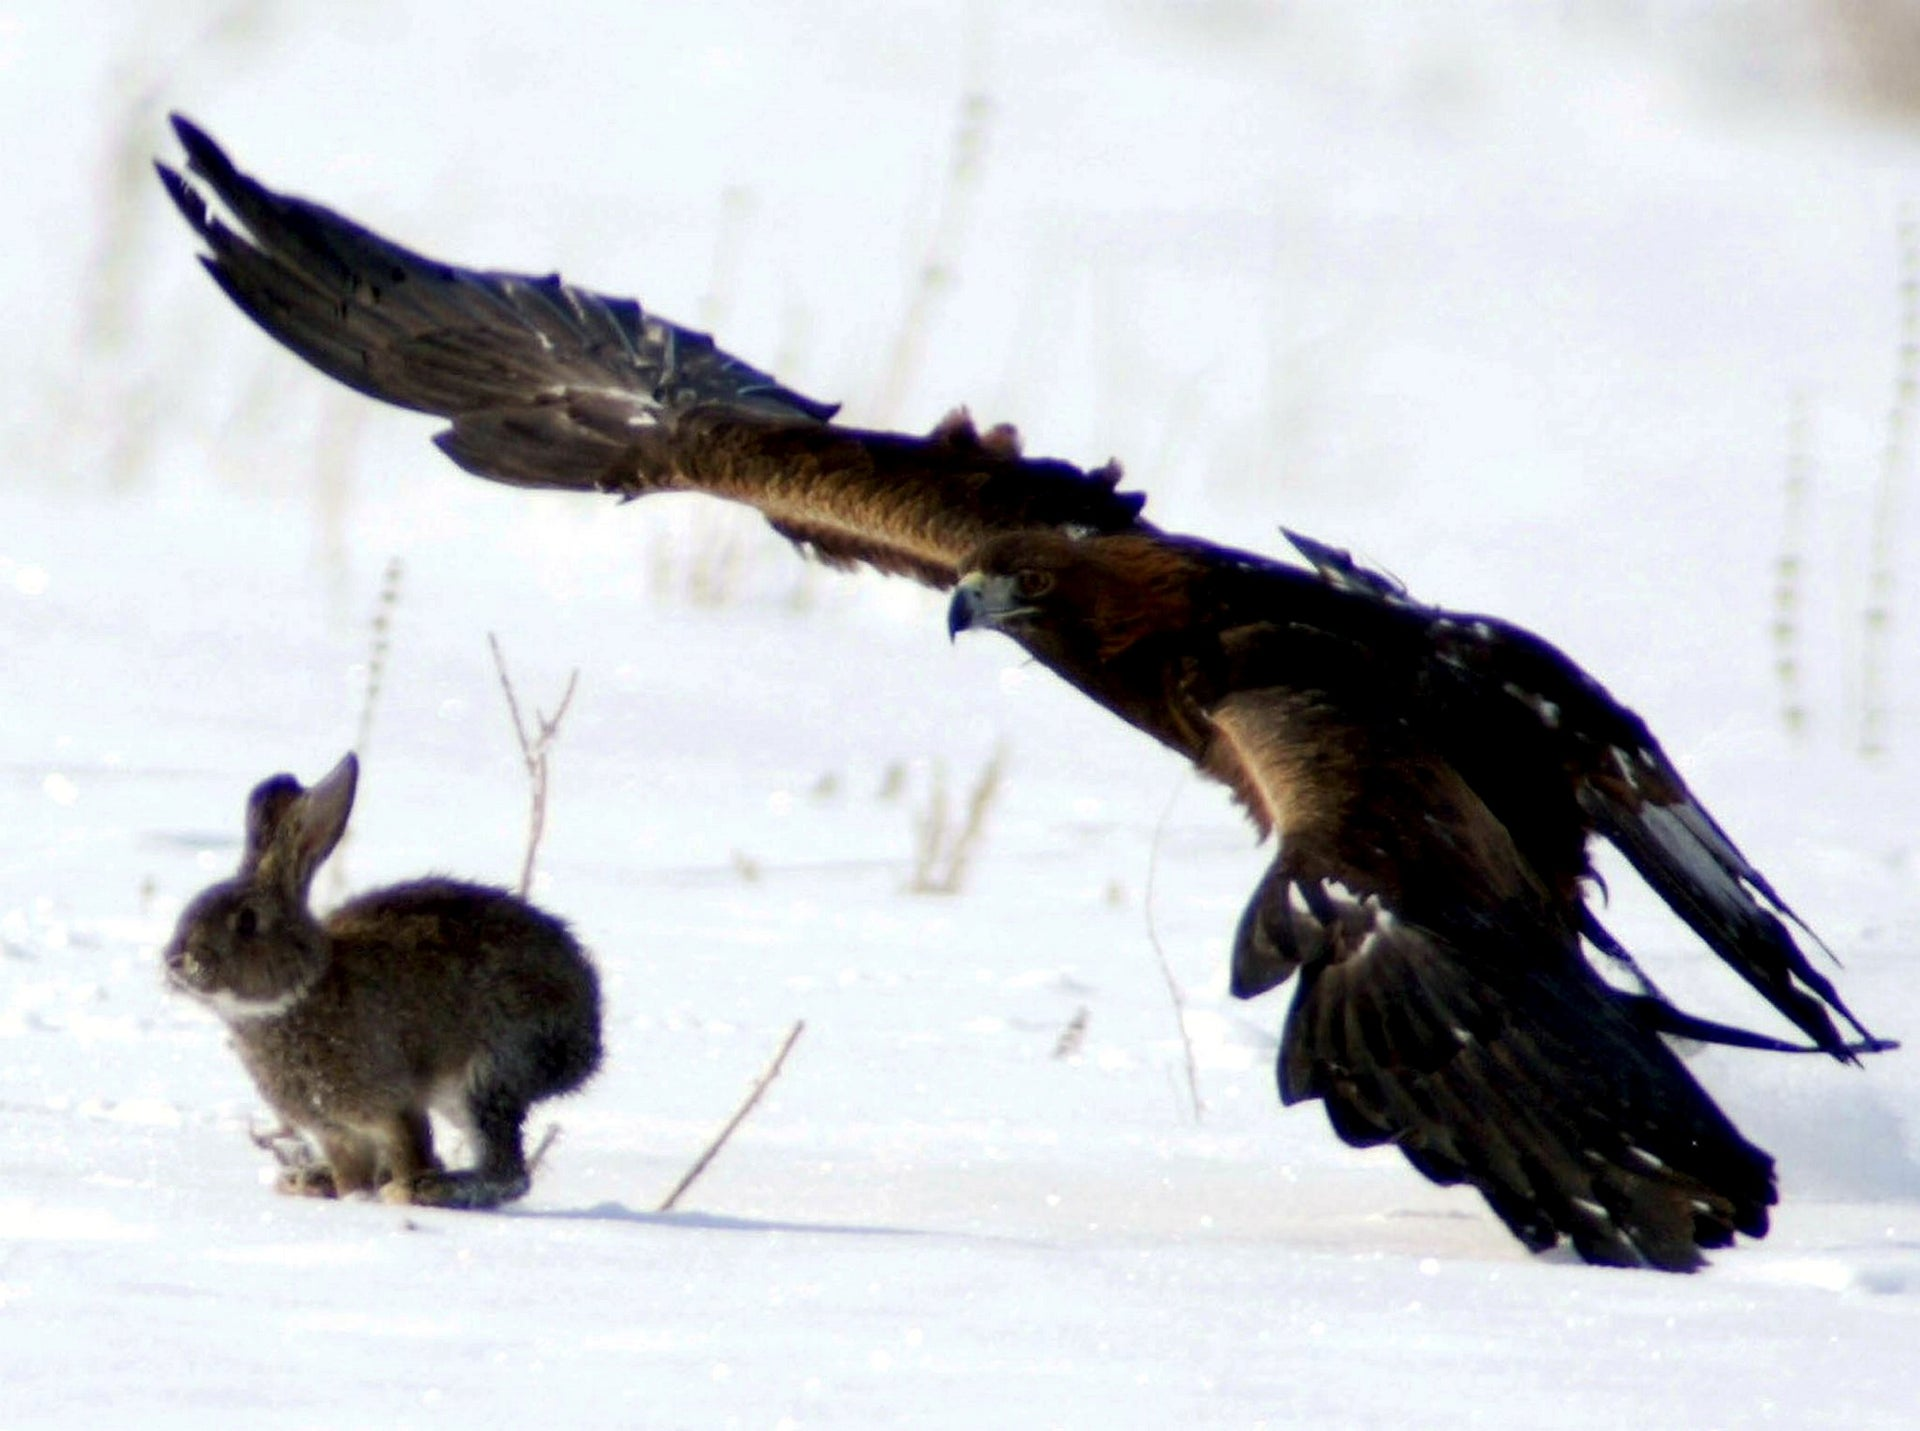 Golden eagle and hare